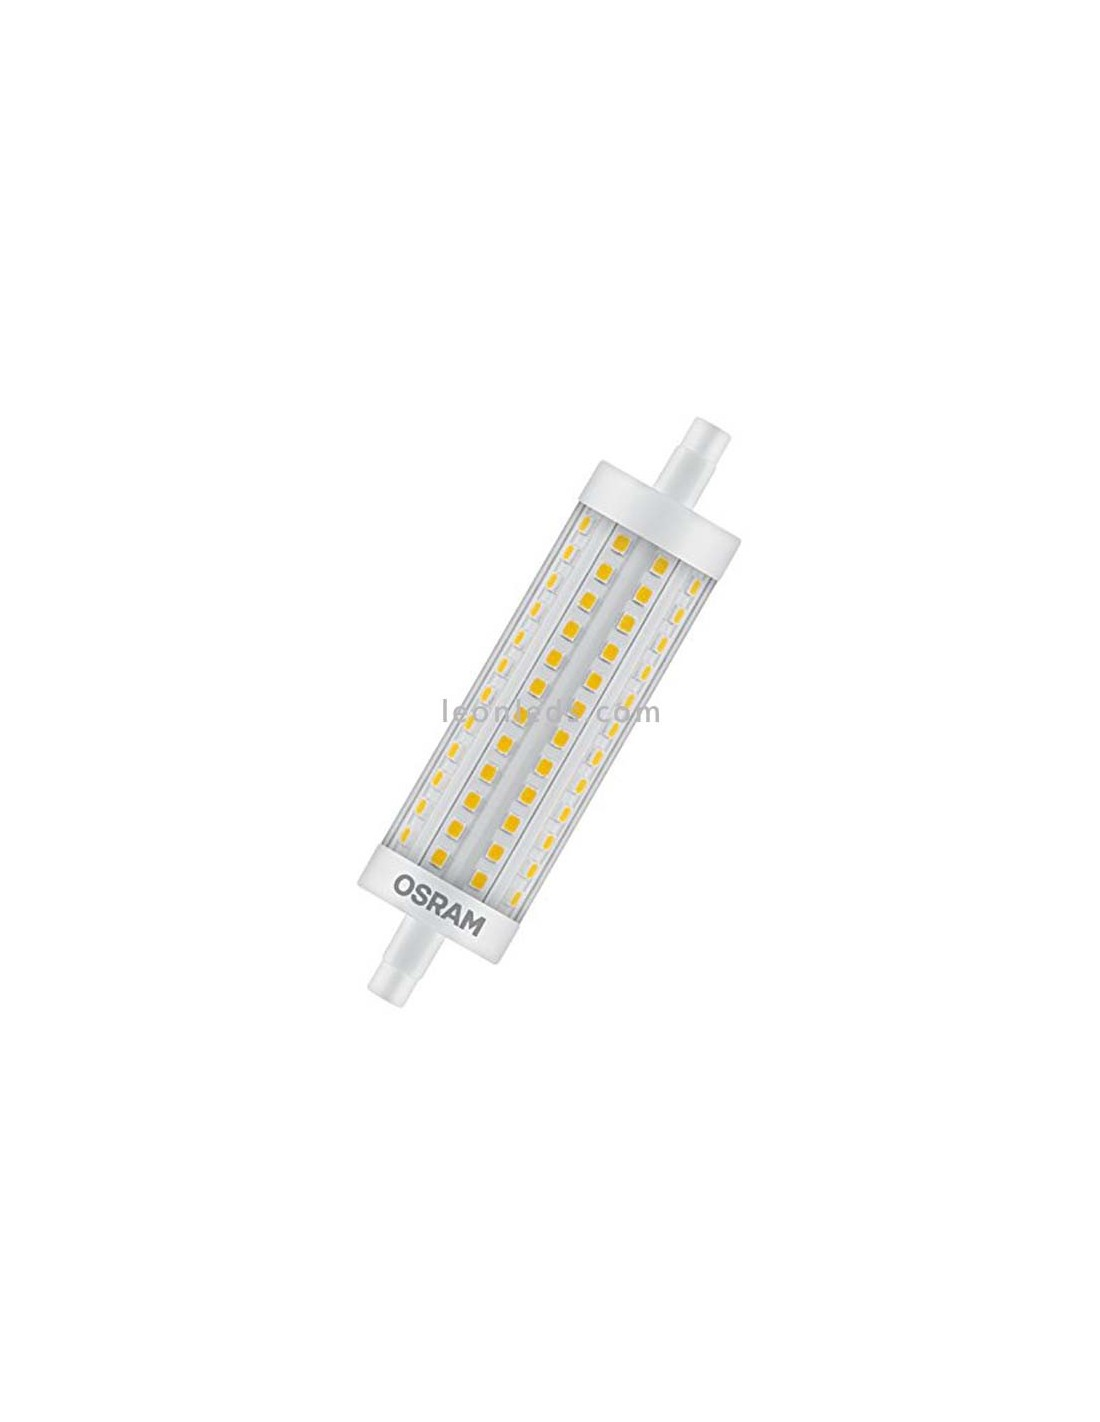 Lamparas Halogenas Osram Lámpara R7s Led Osram Star Line 15w 118mm Dimmable